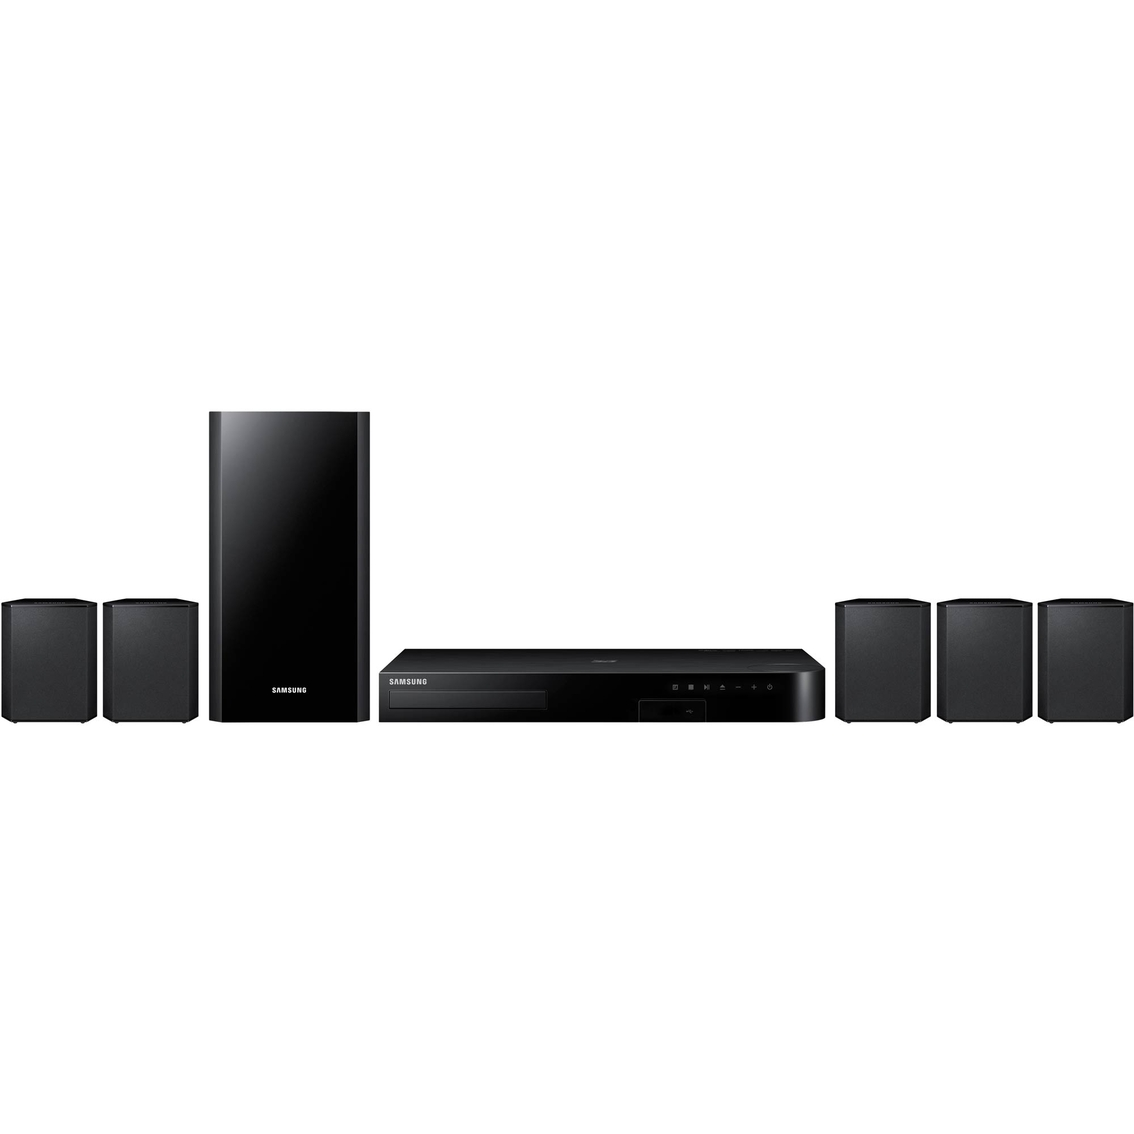 Samsung Htj4500 Home Theater System Home Theater Gifts Food